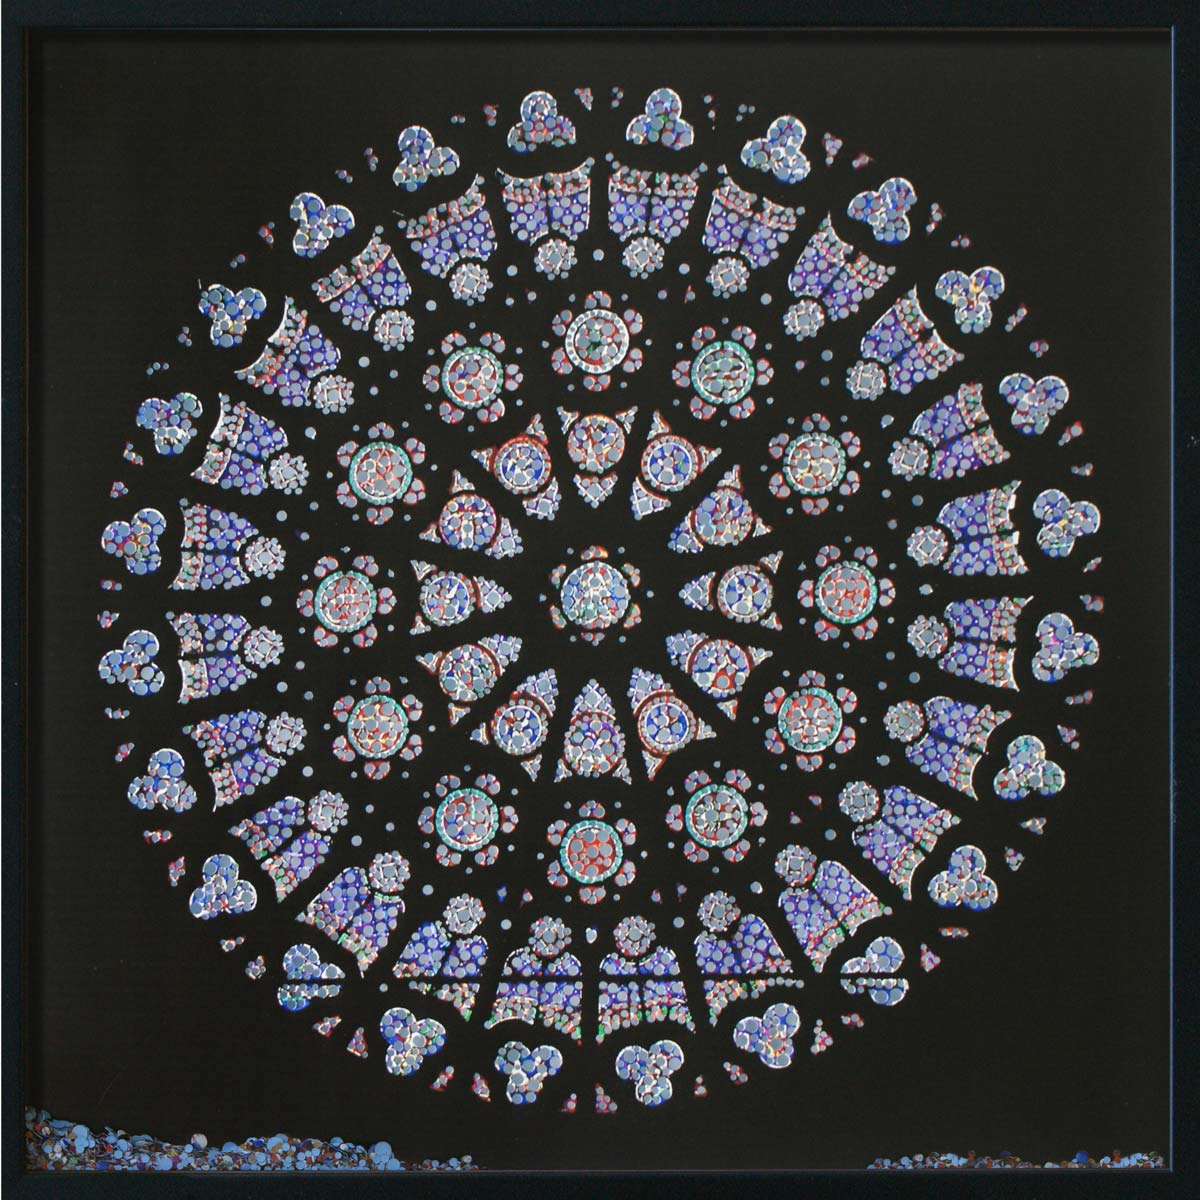 Revelation, Cathédrale de Saint-Denis, © 2011, Perforated inkjet print, loose confetti produced by the perforation process, each 50 x 50 cm